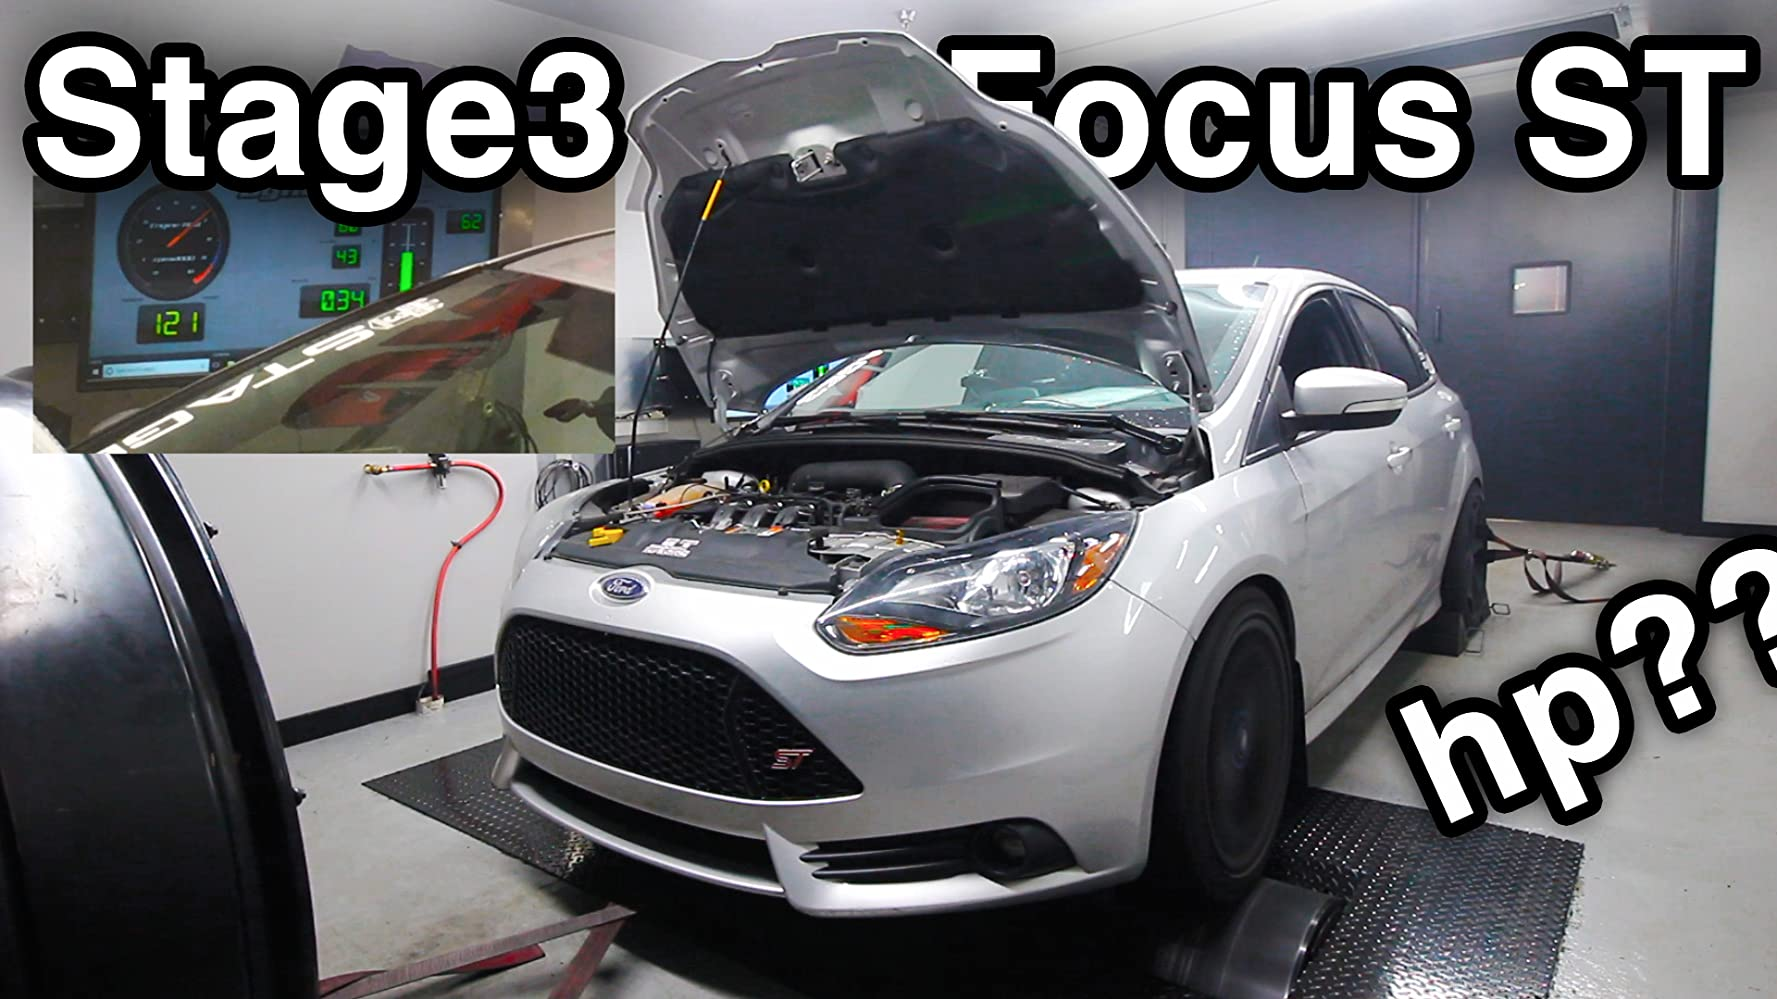 Stage3 Ford Focus ST Dyno Test - Dynamometer - How Much